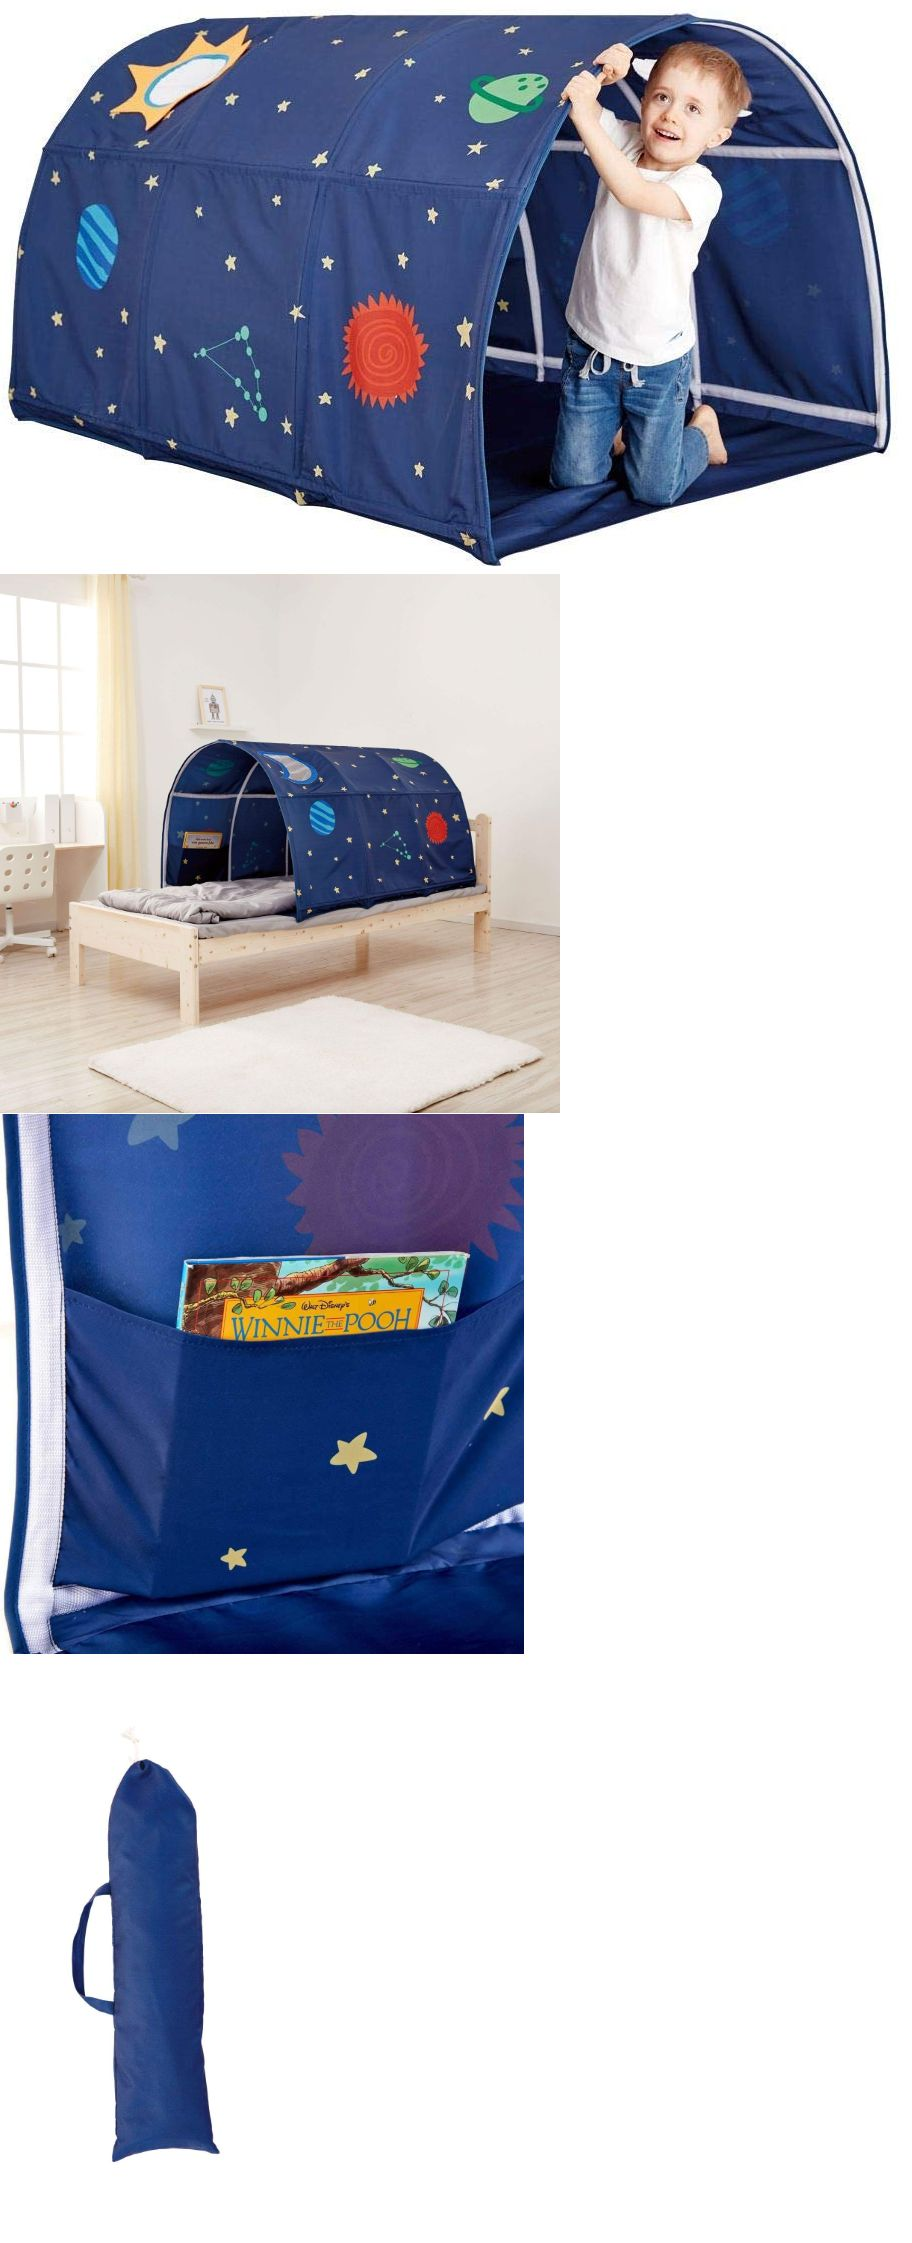 Play Tents 145997 Kids Bed Tent Hideout Tunnel Fort Toddler Privacy Play Hut Pet Toy Twin Bedding -u003e BUY IT NOW ONLY $24.95 on #eBay #tents #hideout ...  sc 1 st  Pinterest & Play Tents 145997: Kids Bed Tent Hideout Tunnel Fort Toddler Privacy ...